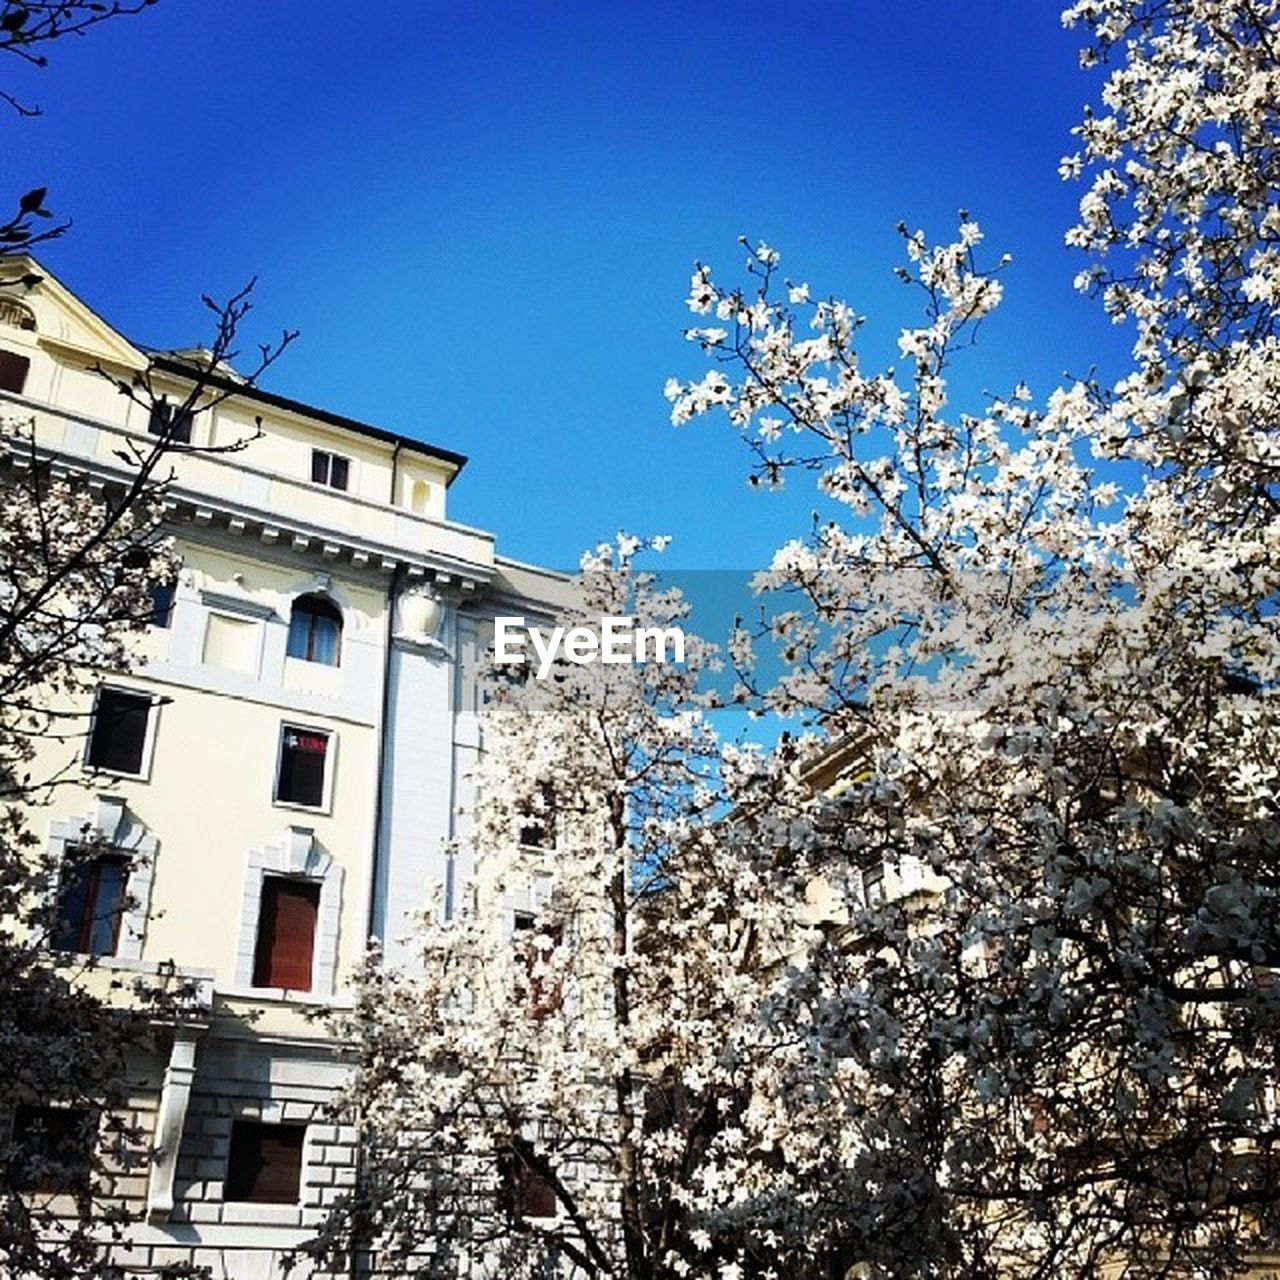 tree, low angle view, architecture, building exterior, branch, flower, built structure, fragility, no people, blossom, day, springtime, clear sky, apple blossom, outdoors, nature, blue, growth, beauty in nature, freshness, sky